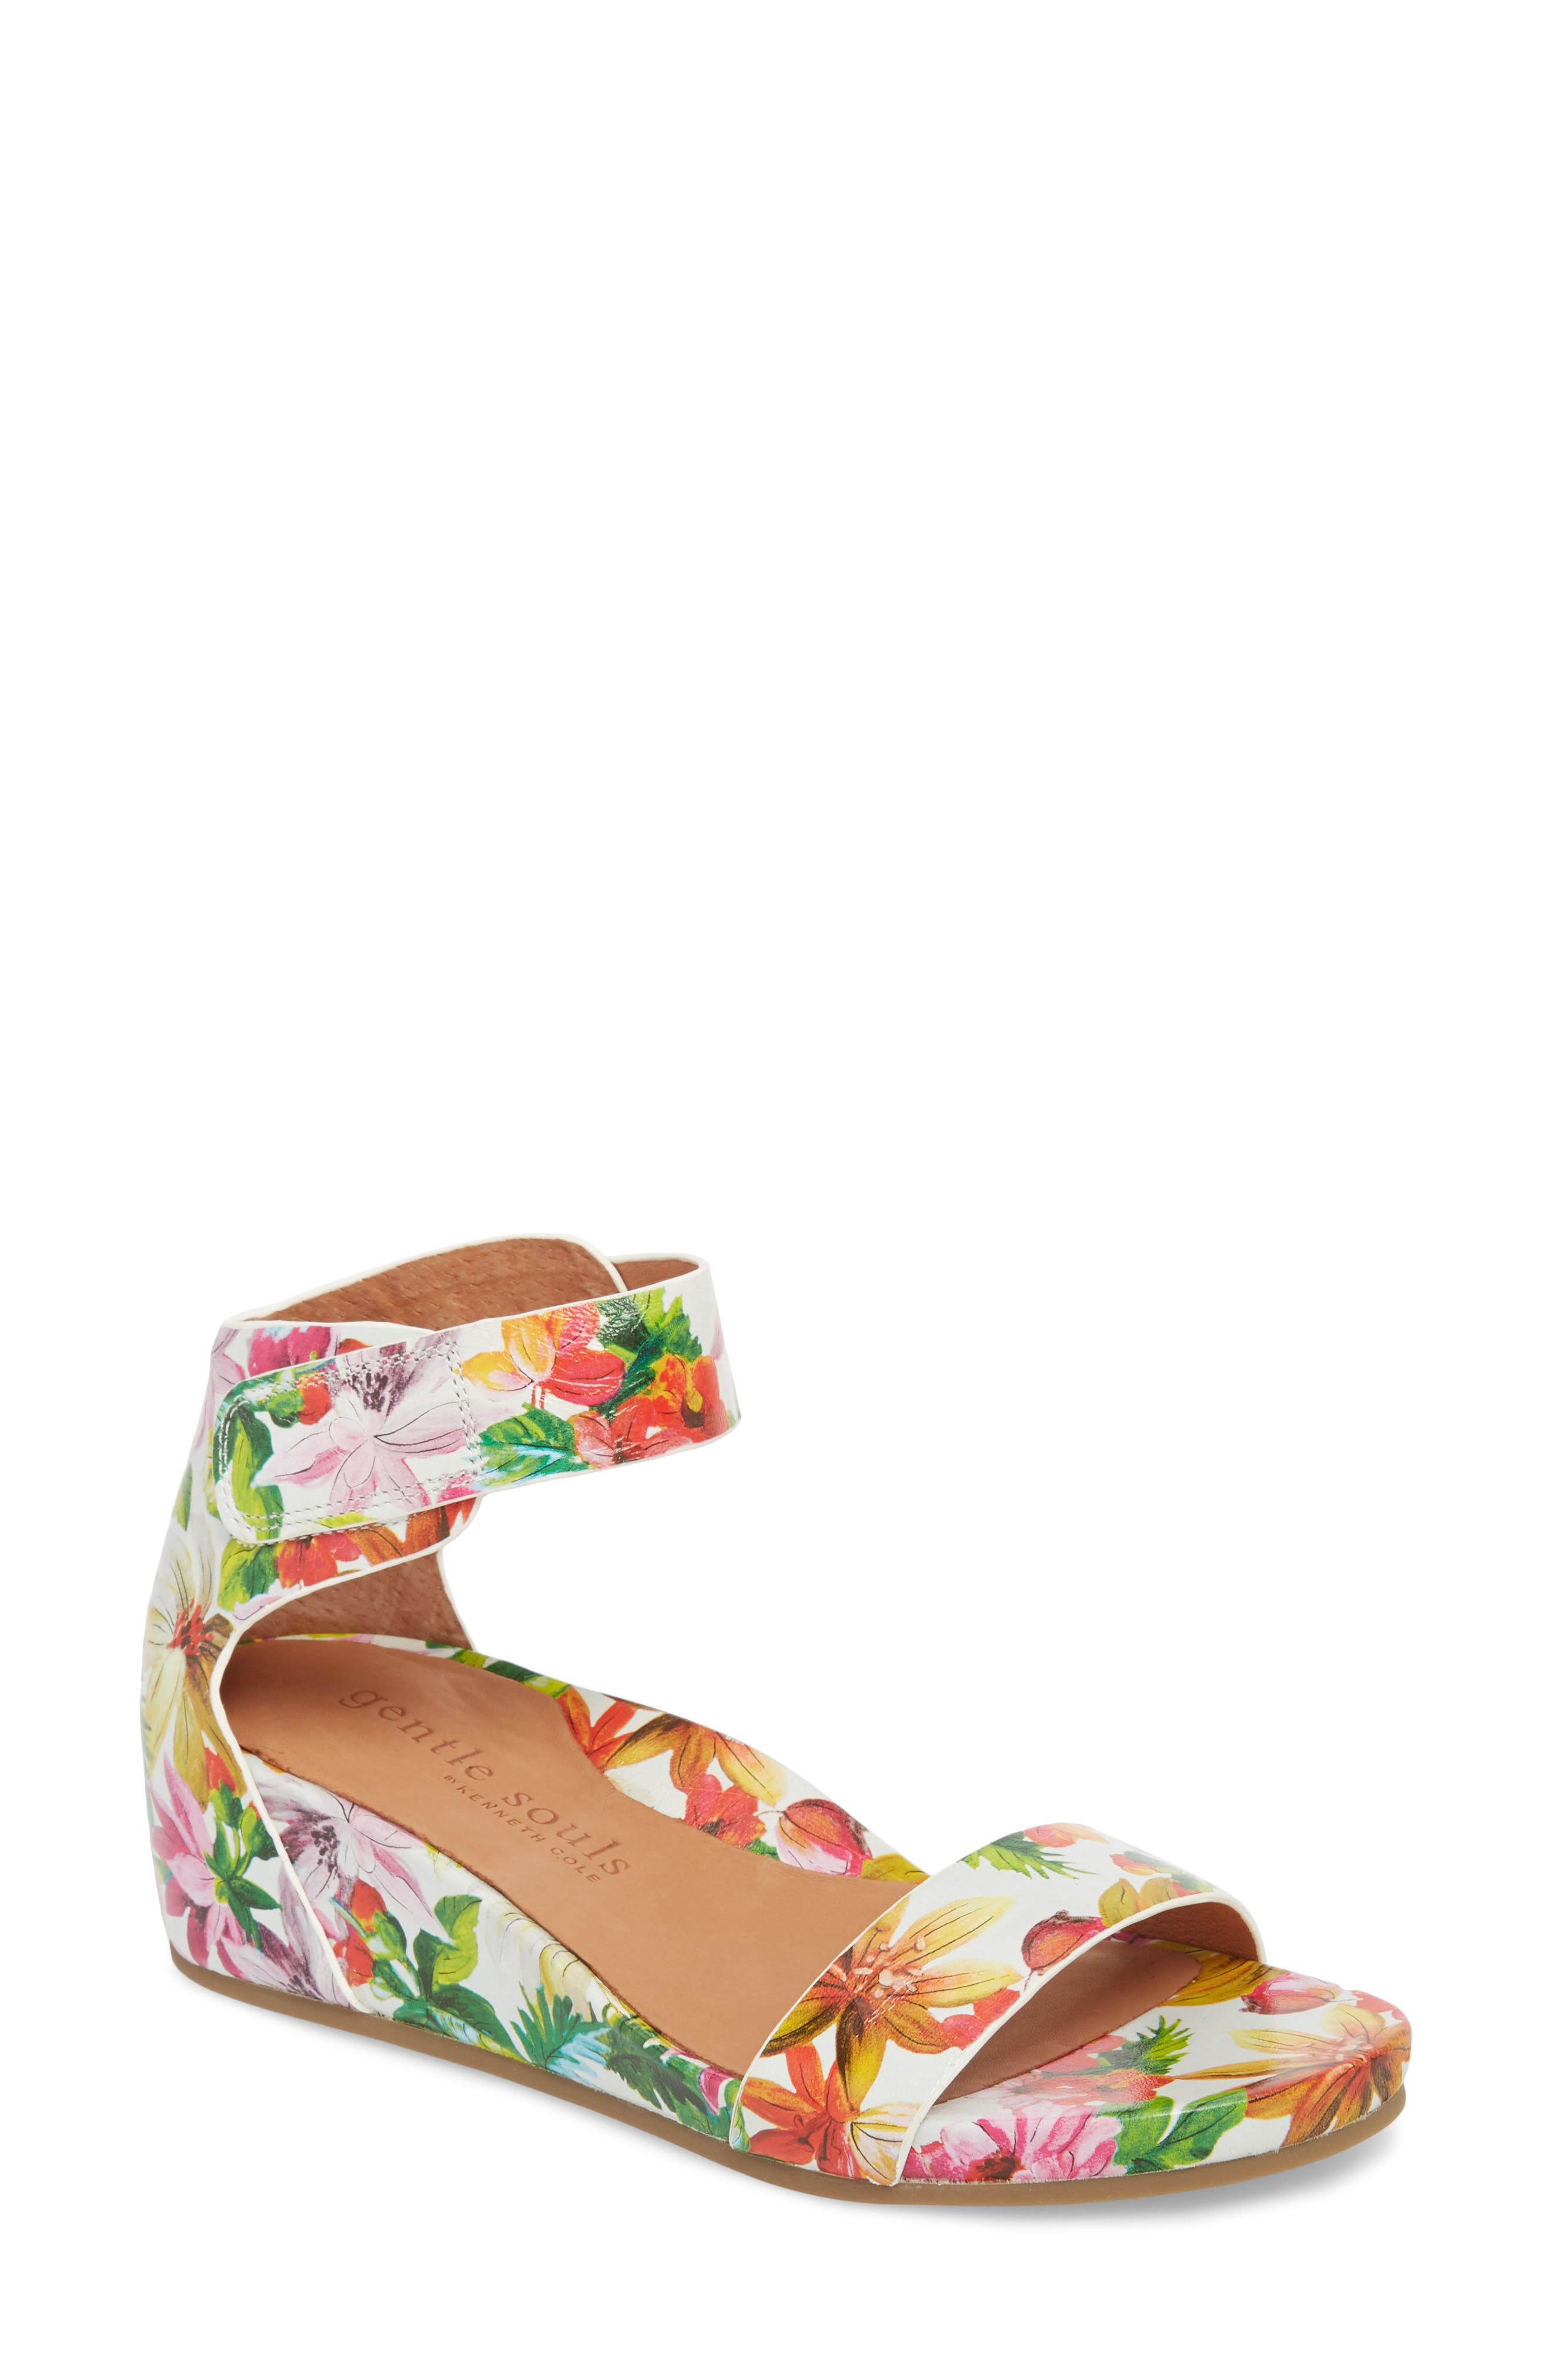 Gentle Souls by Kenneth Cole Gianna Wedge Sandal,                         Main,                         color, PALM PRINTED LEATHER